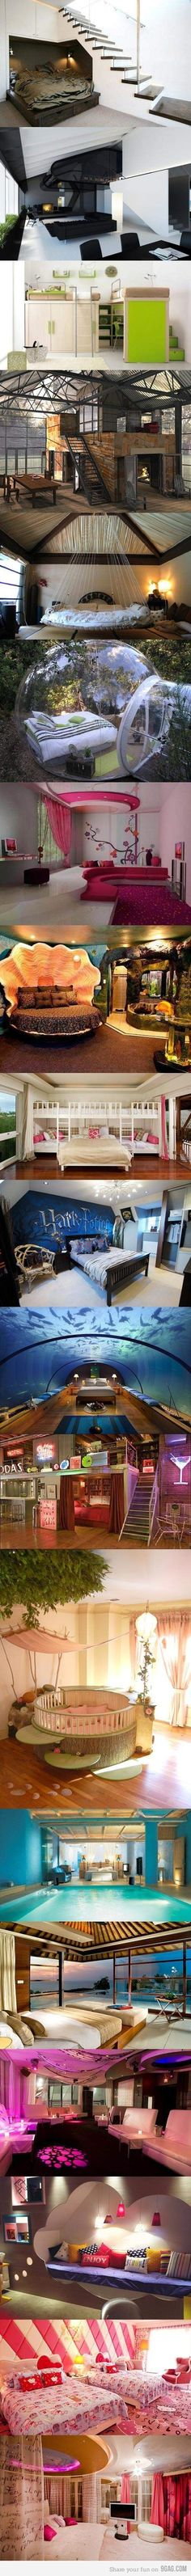 Dream Bedrooms. I liked the aquarium and Harry potter one!